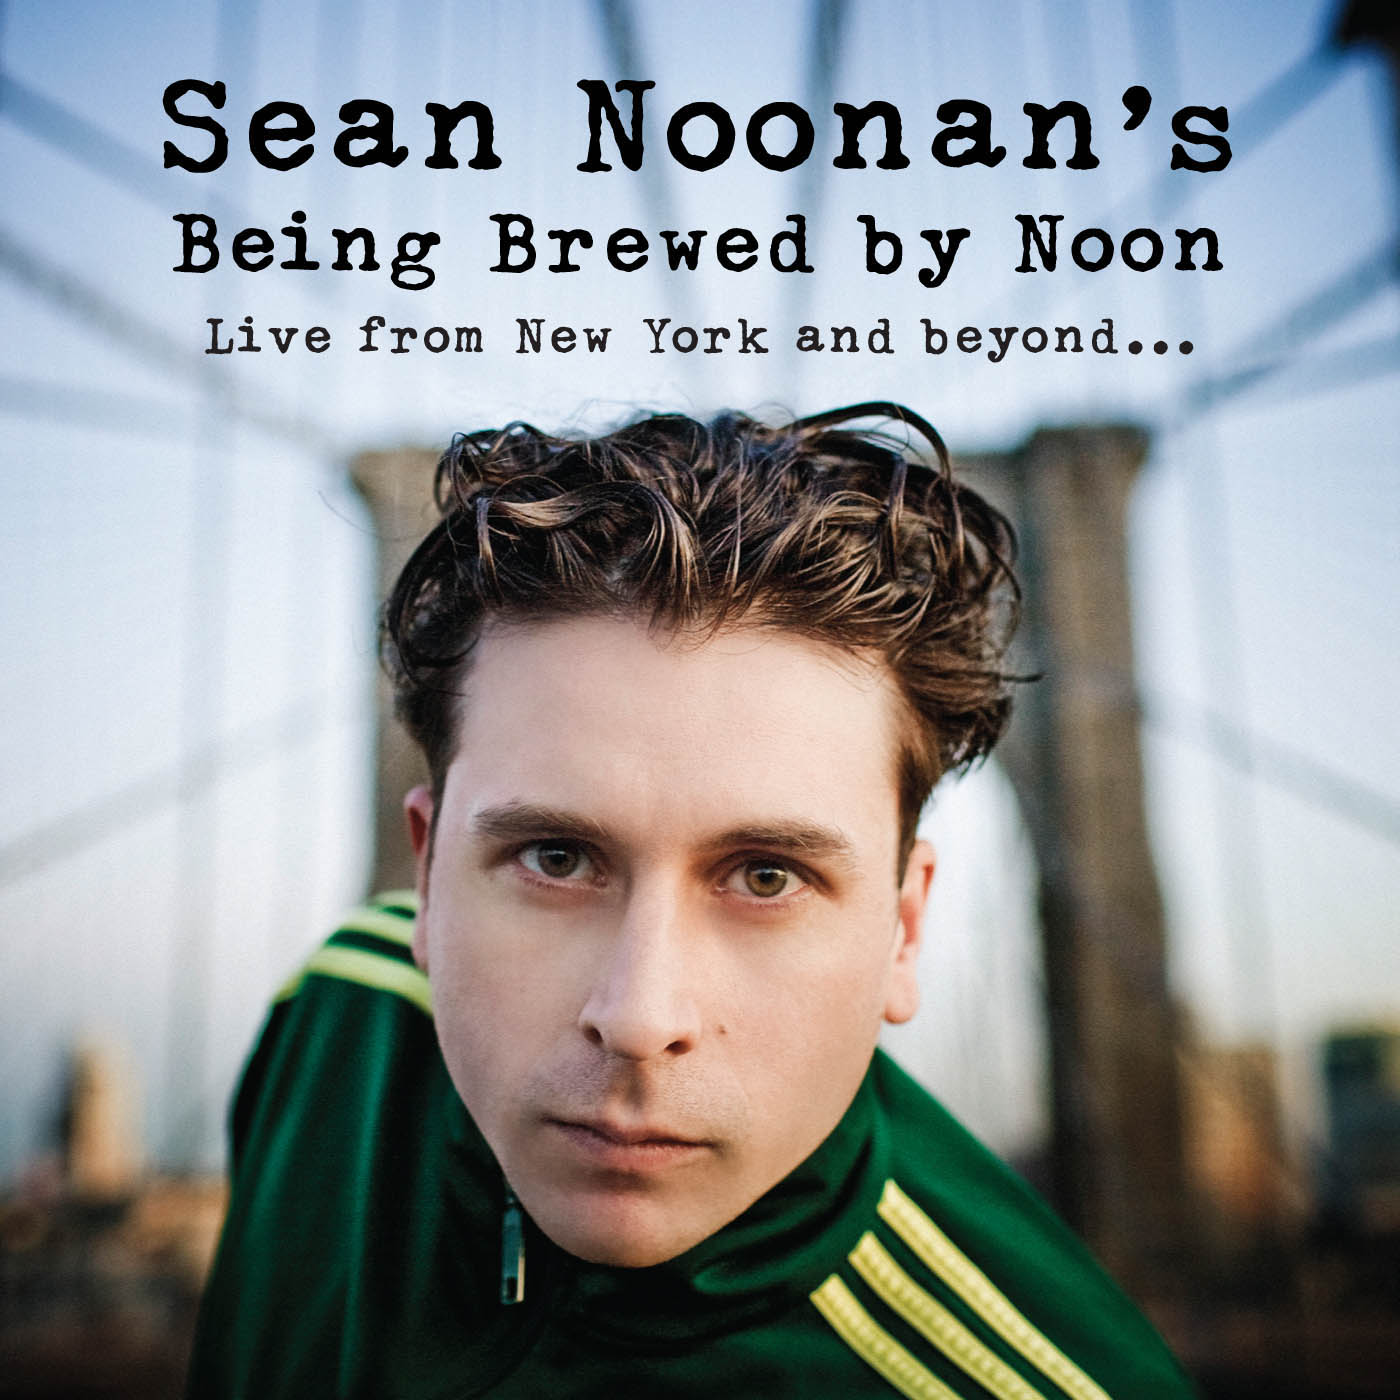 Sean Noonan - Brewed By Noon